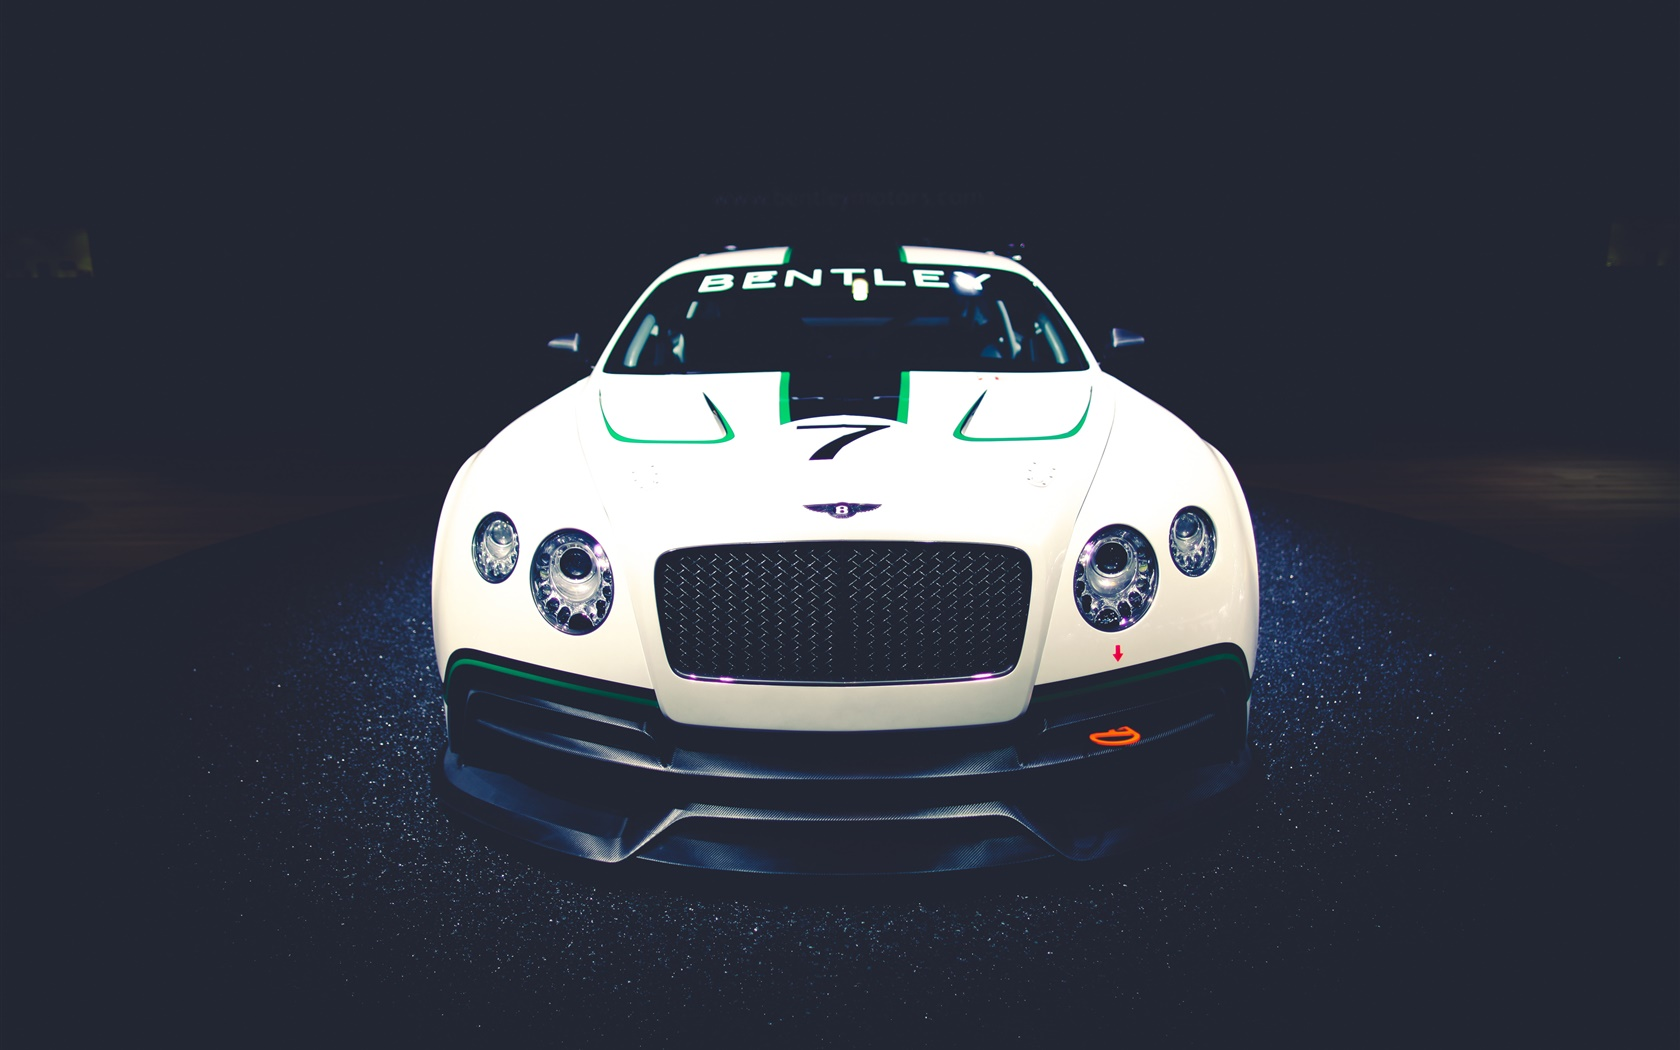 Bentley Continental GT3 Concept race car front view 1680x1050 wallpaper